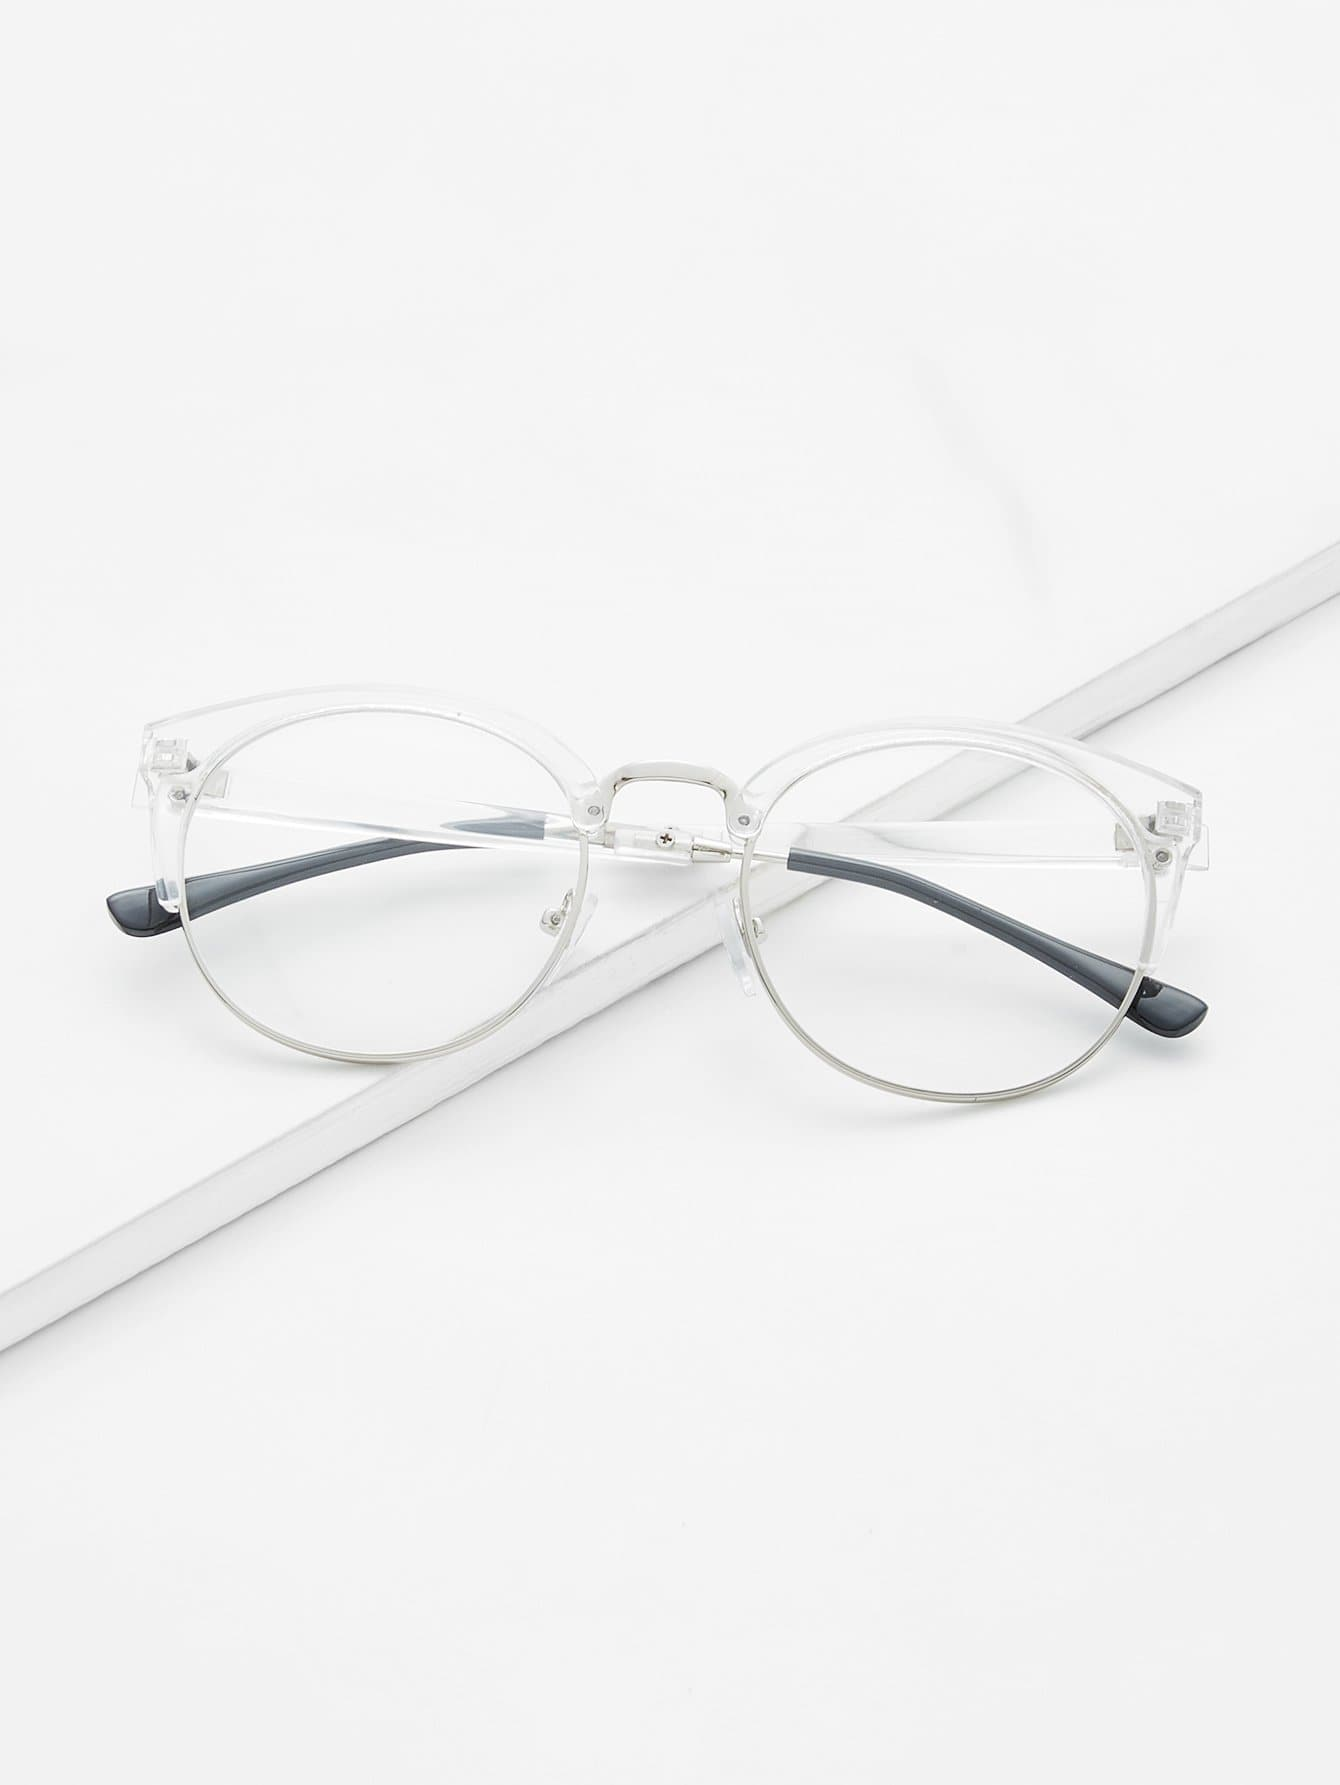 Clear Frame Glasses With Clear Lens giovanni sonetto